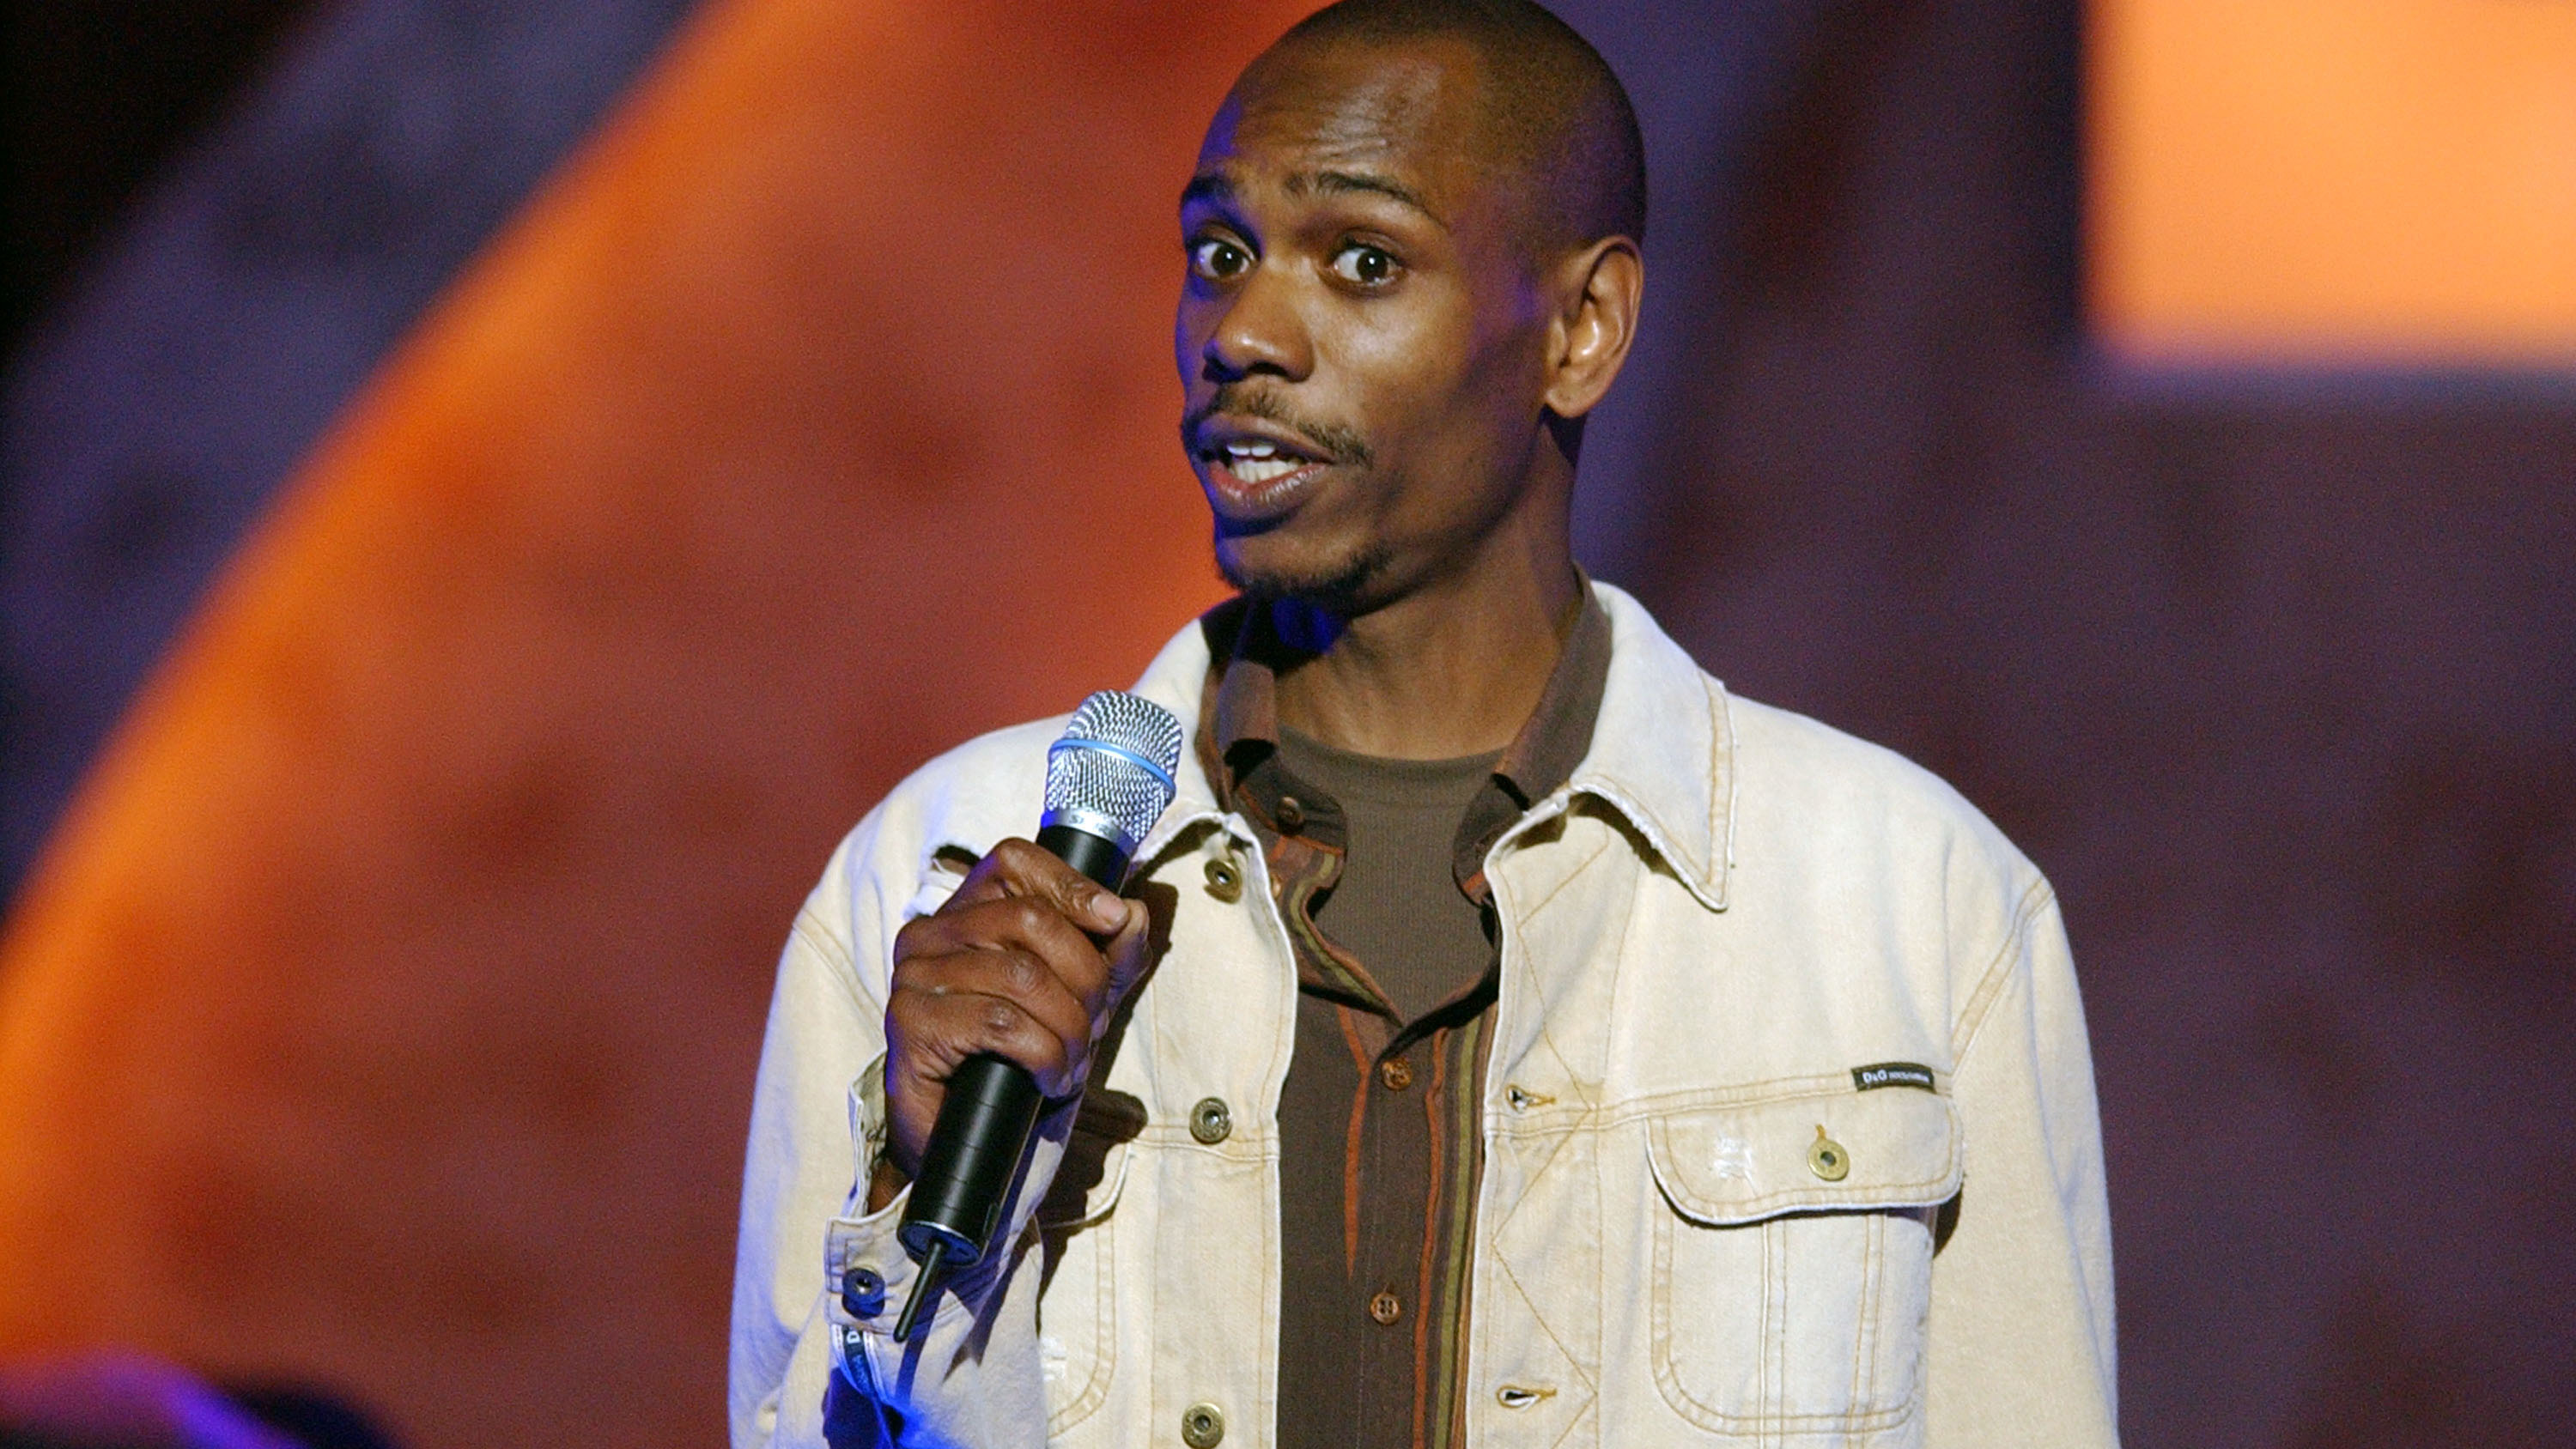 The Best Dave Chappelle Unforgiven